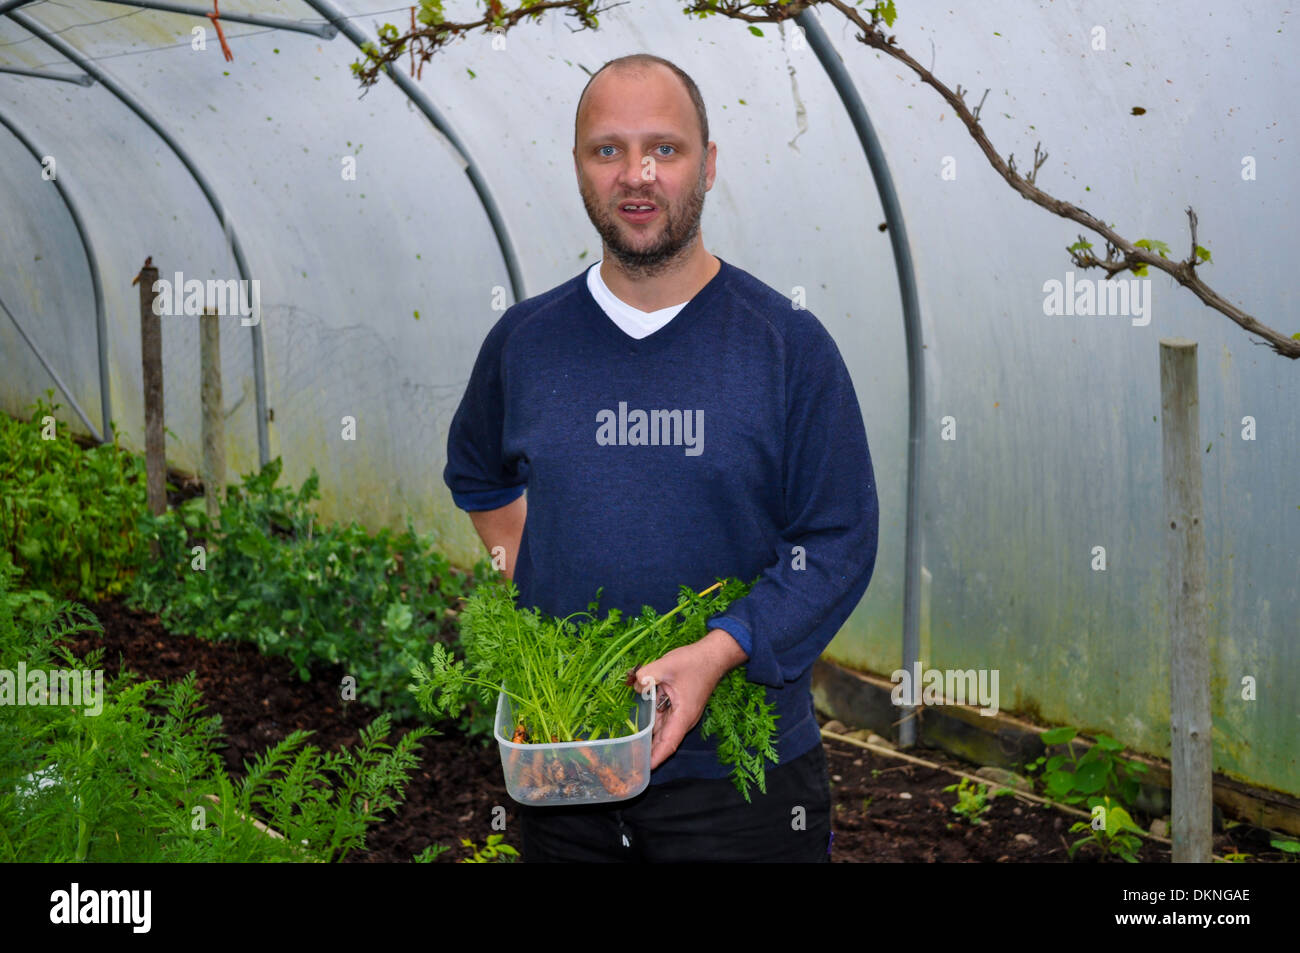 Simon Rogan, chef and owner of Michelin starred restaurant L'enclume on his farm in Cumbria - Stock Image